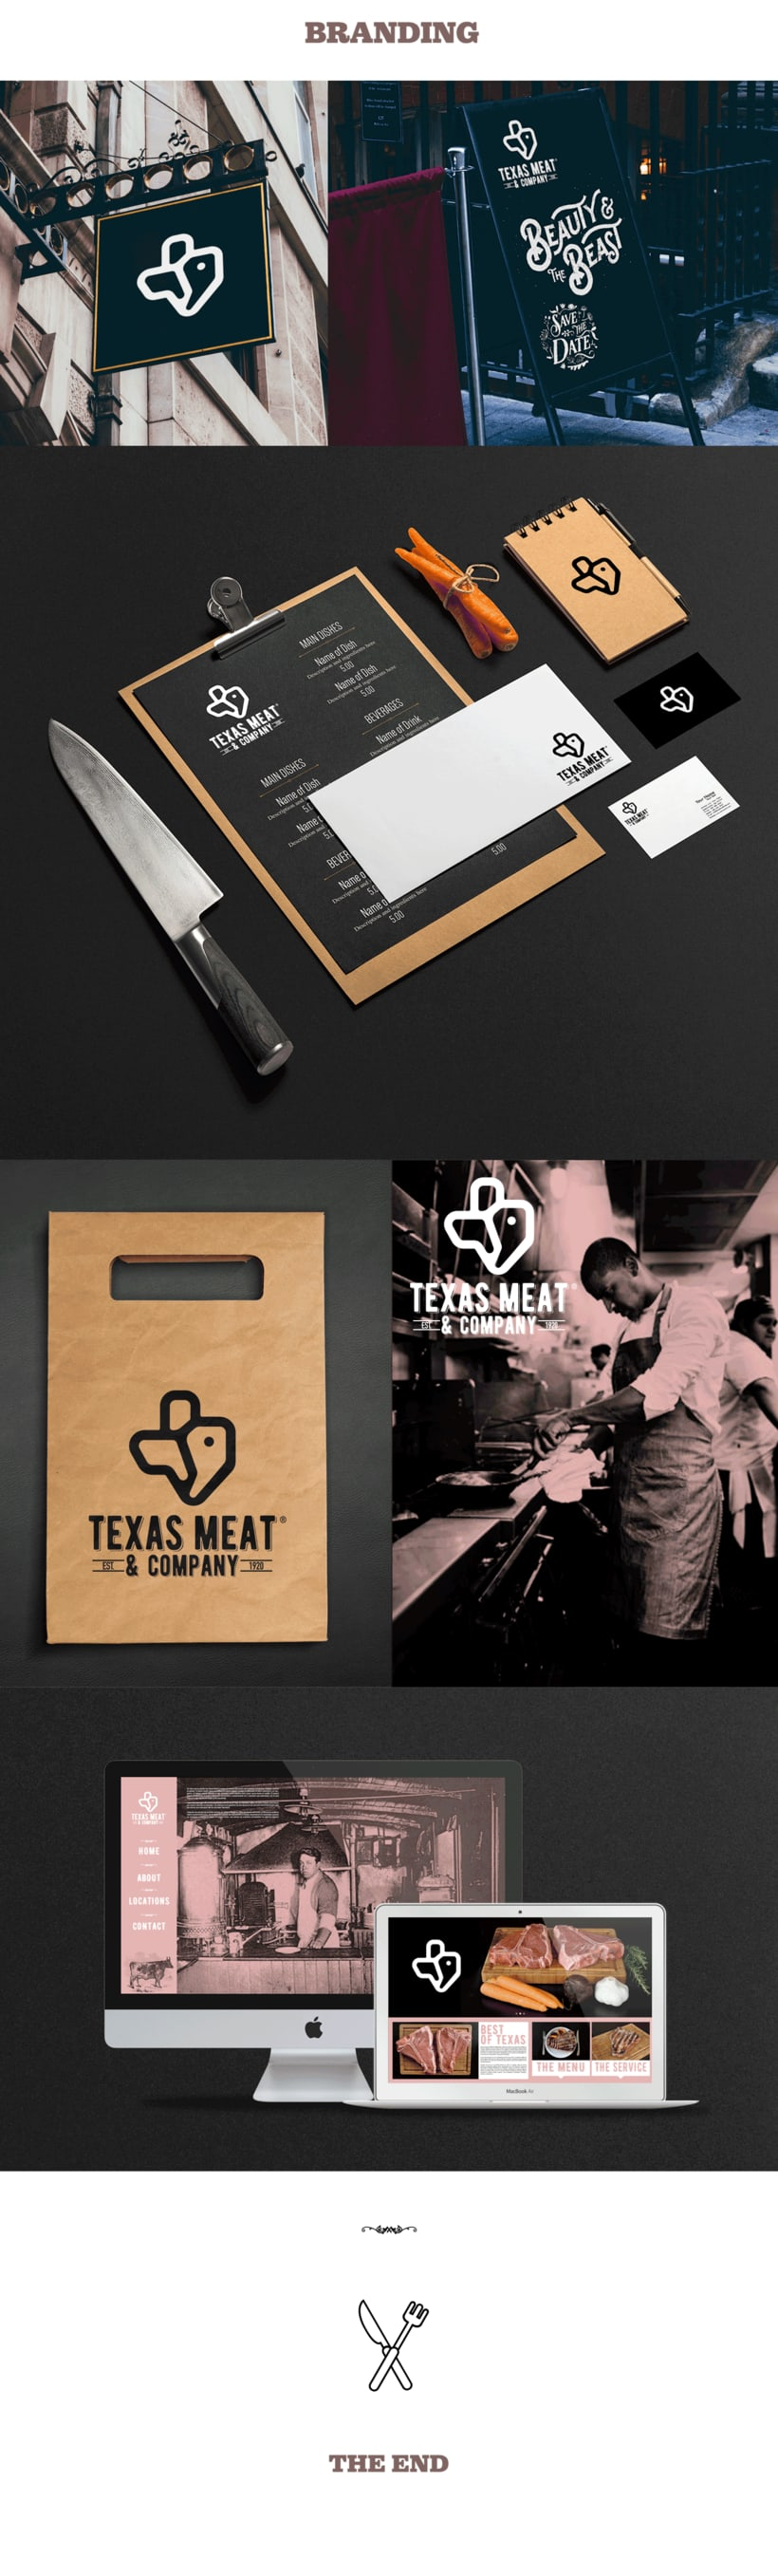 TEXAS MEAT & COMPANY 1